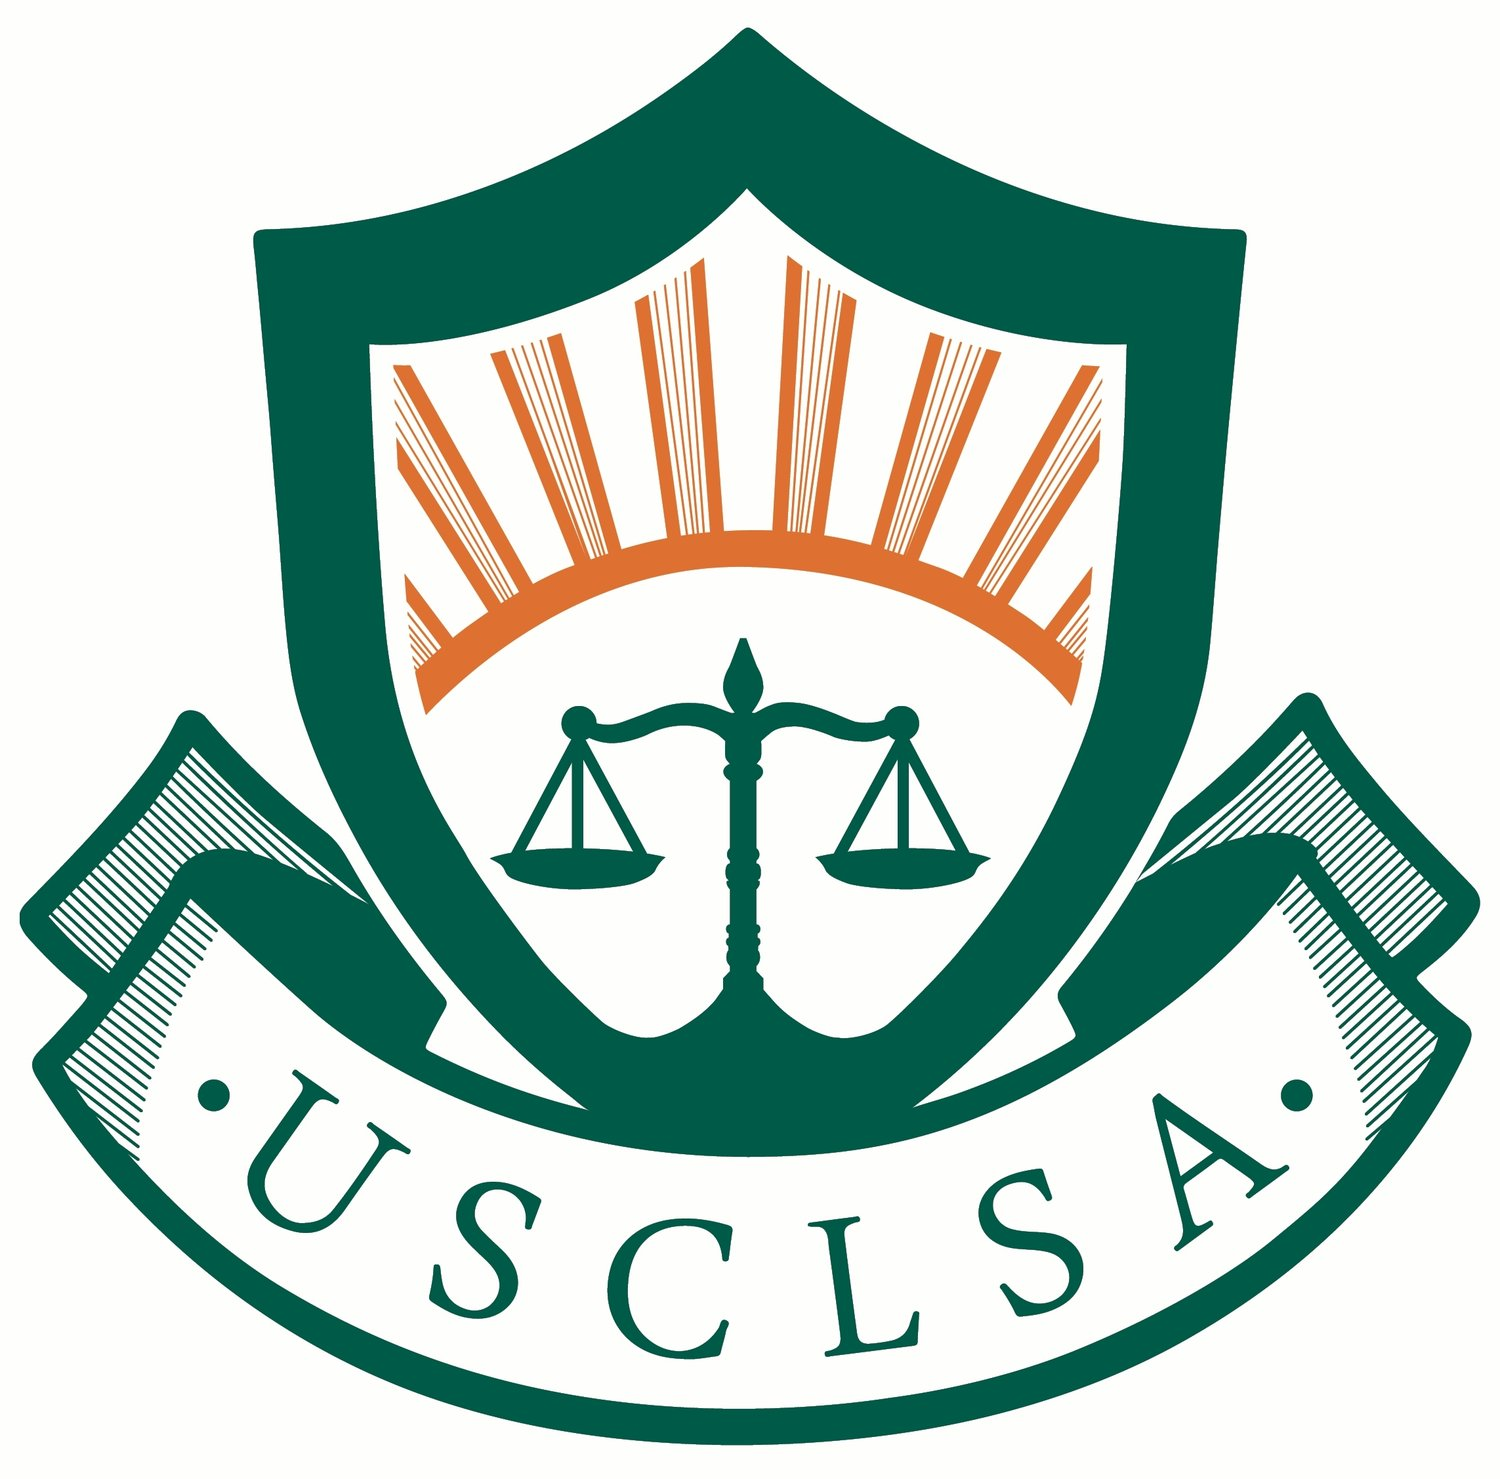 USC Law Students' Association